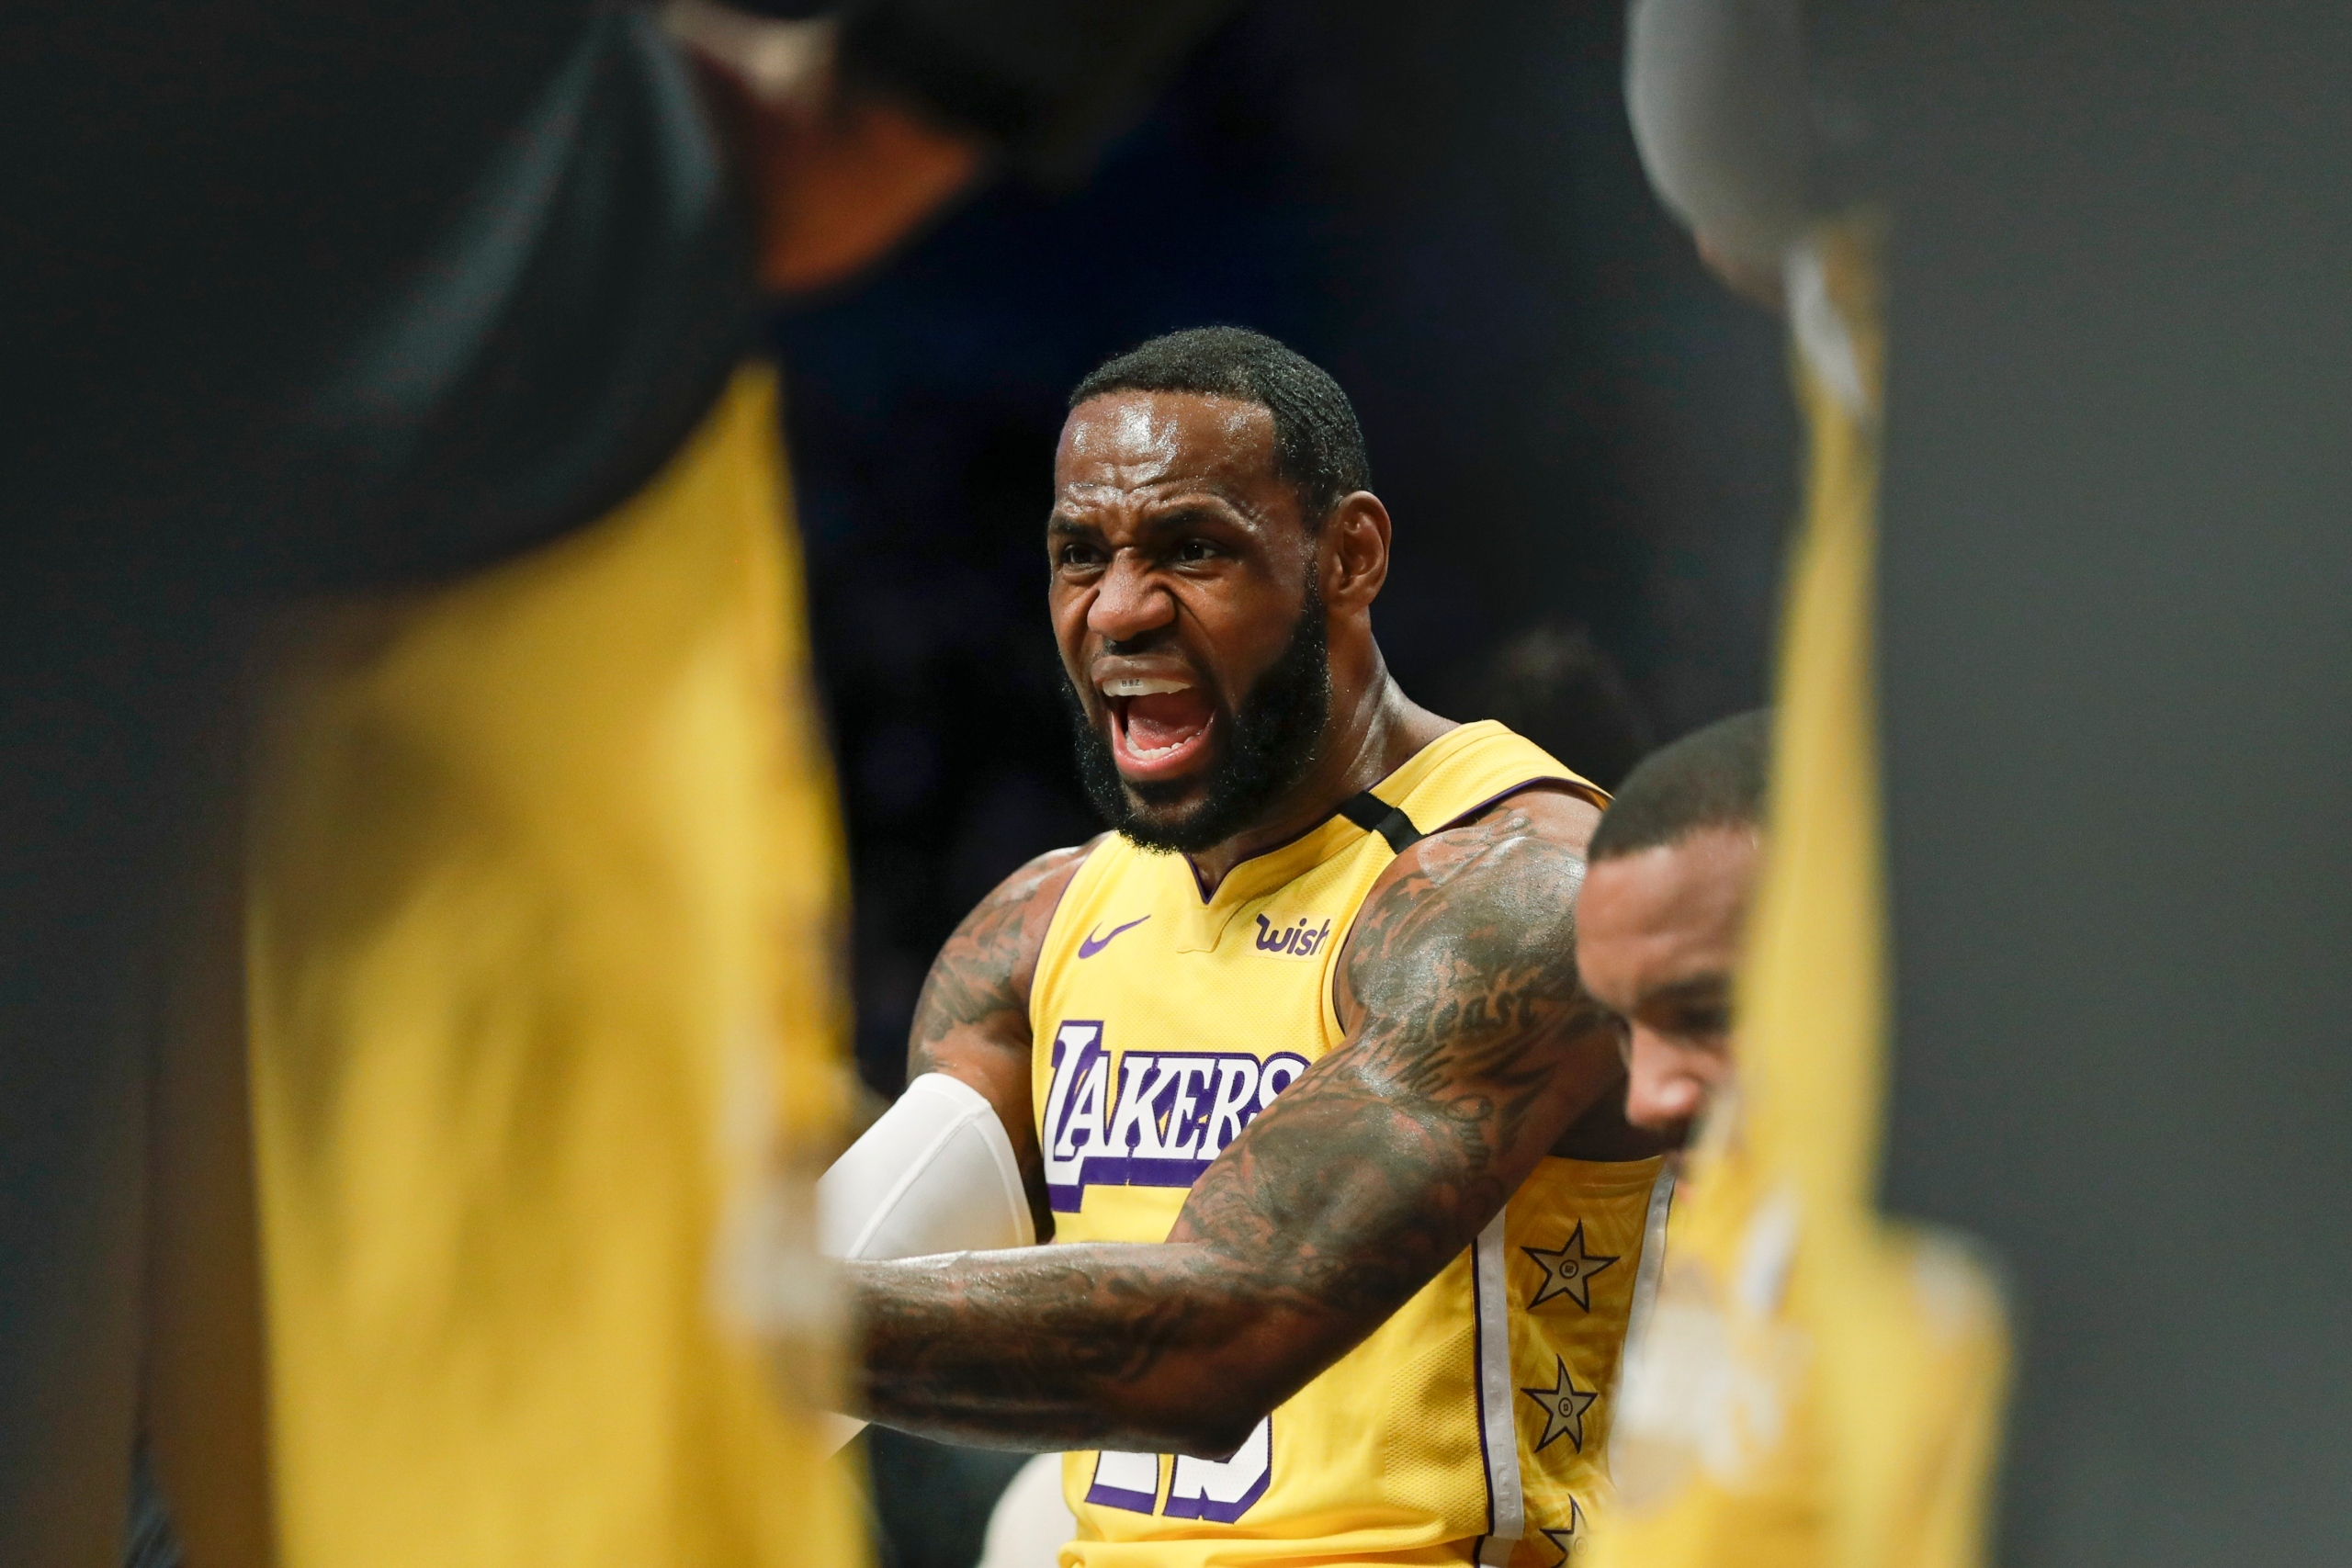 LeBron has triple-double, Lakers pull away to beat Nets - CBS17.com